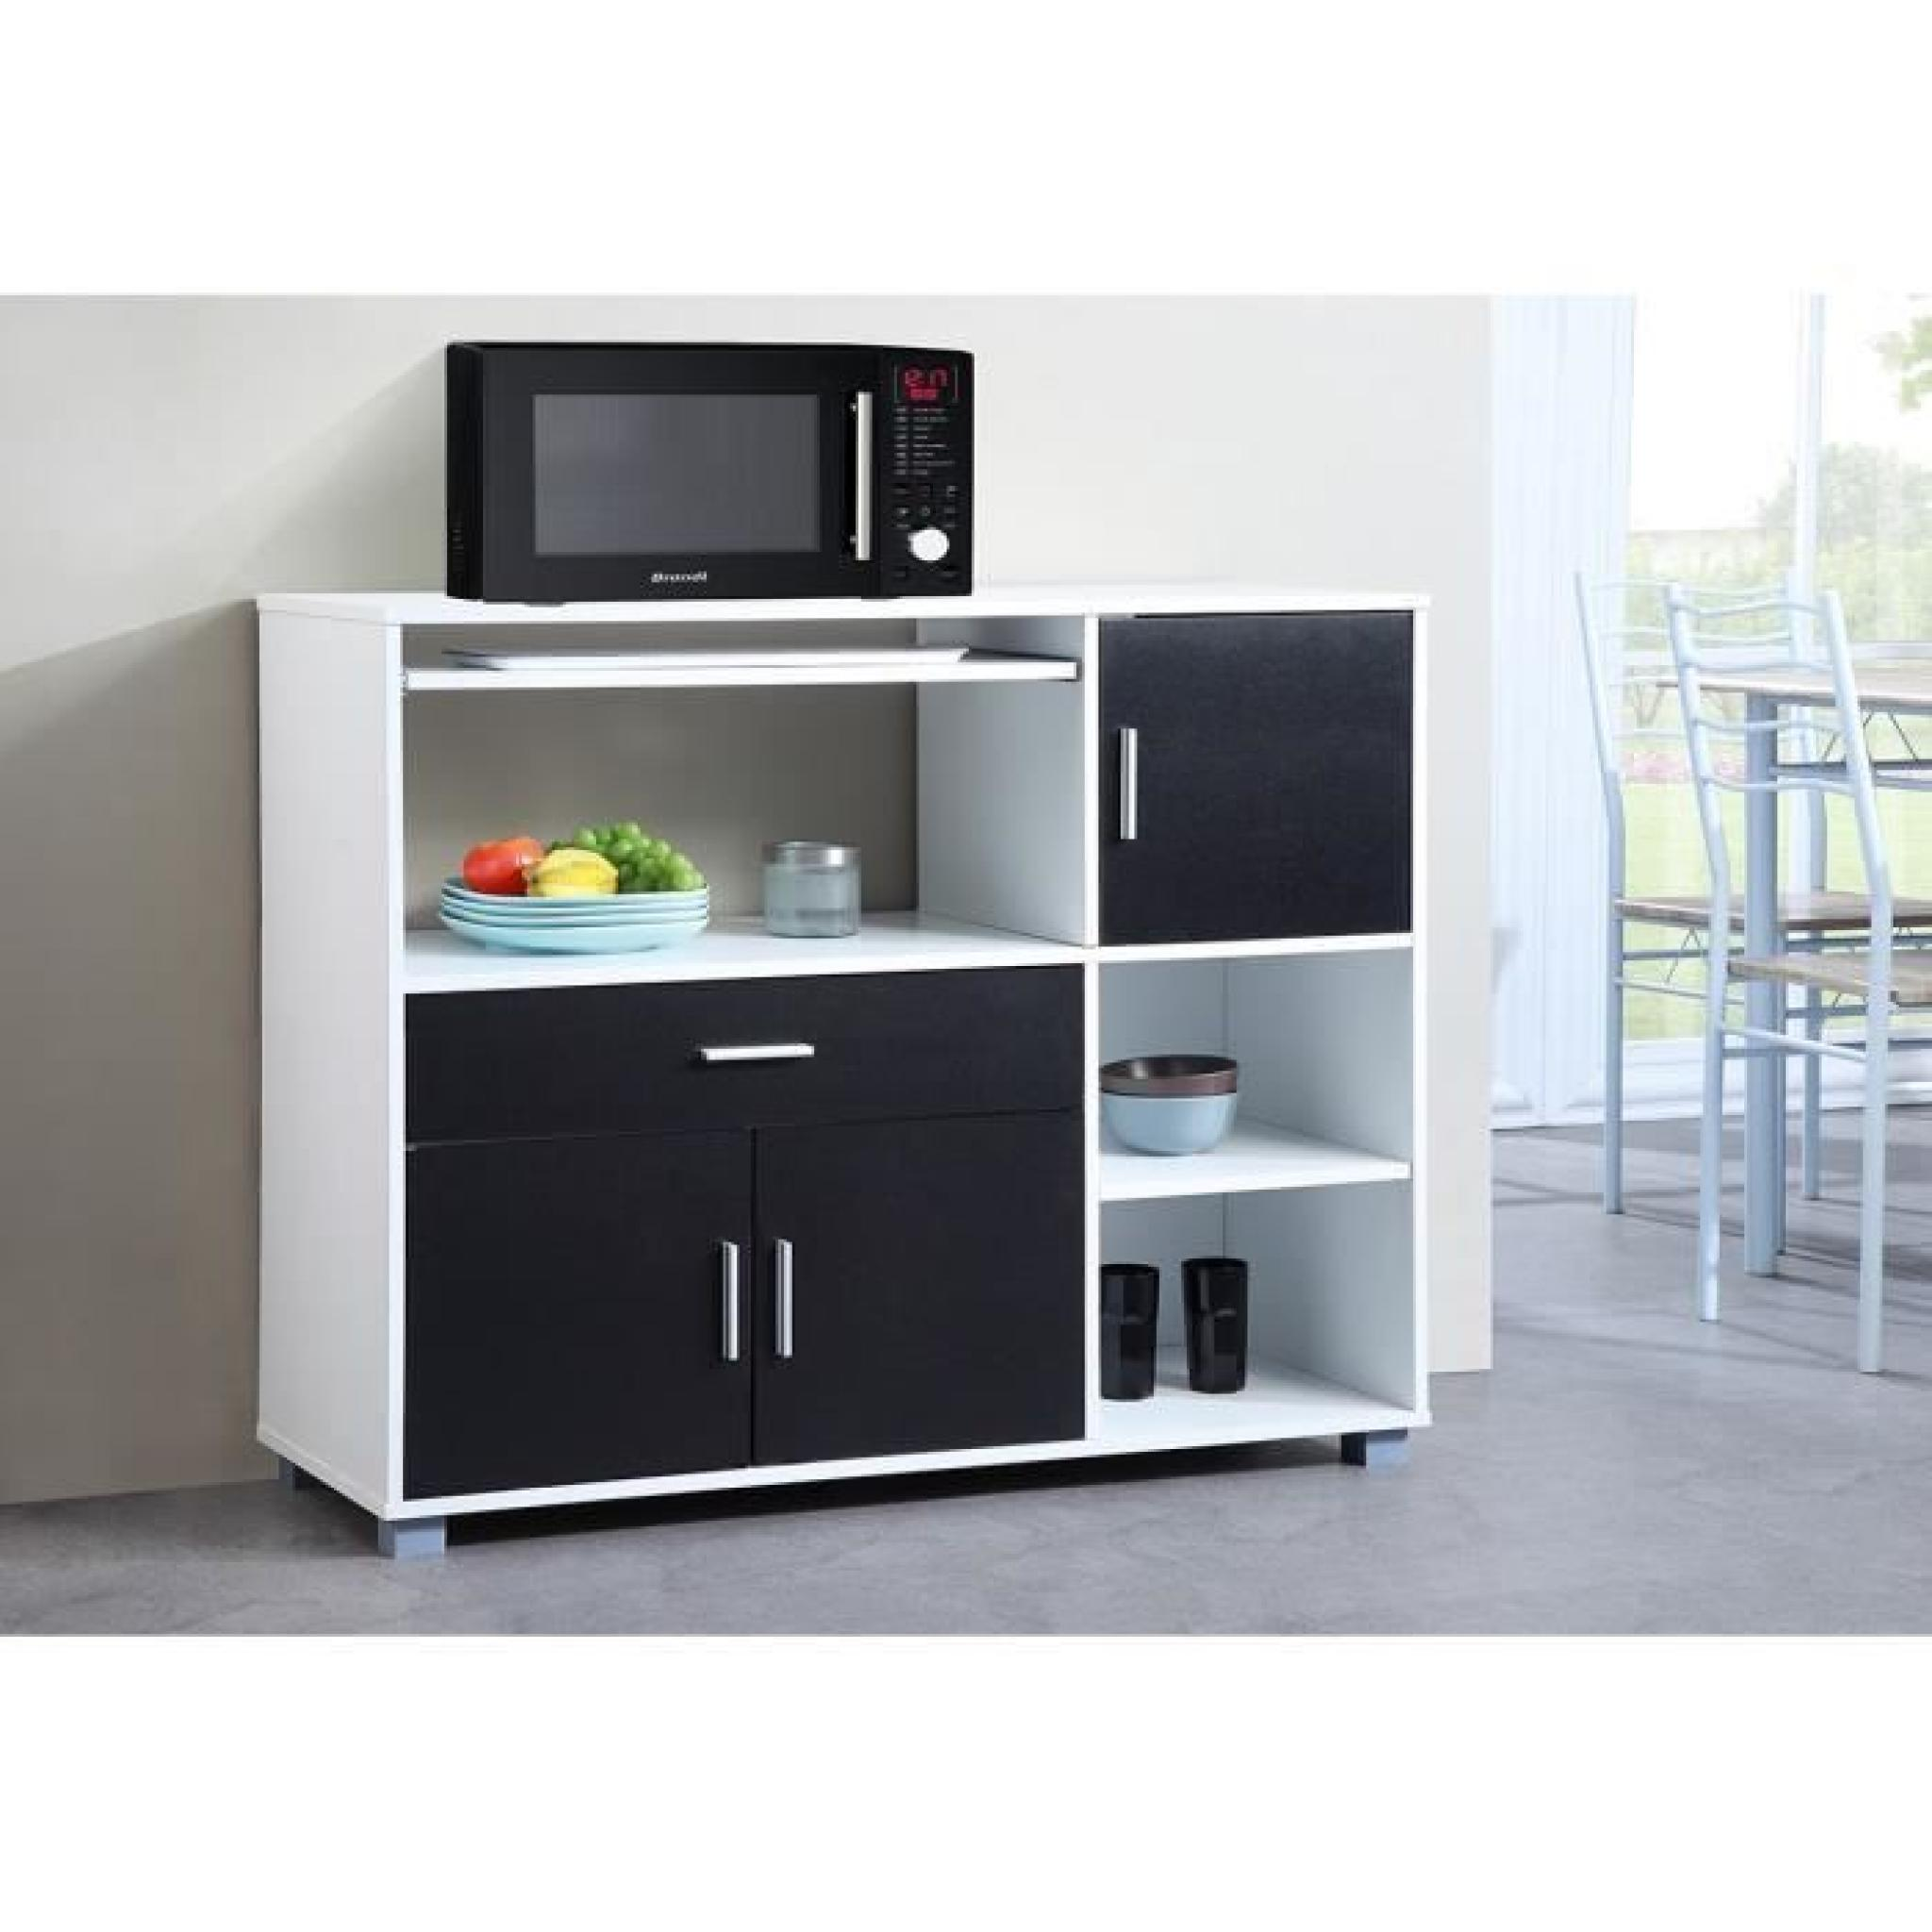 bari buffet de cuisine 110 cm blanc et noir achat vente buffet de cuisine pas cher couleur. Black Bedroom Furniture Sets. Home Design Ideas